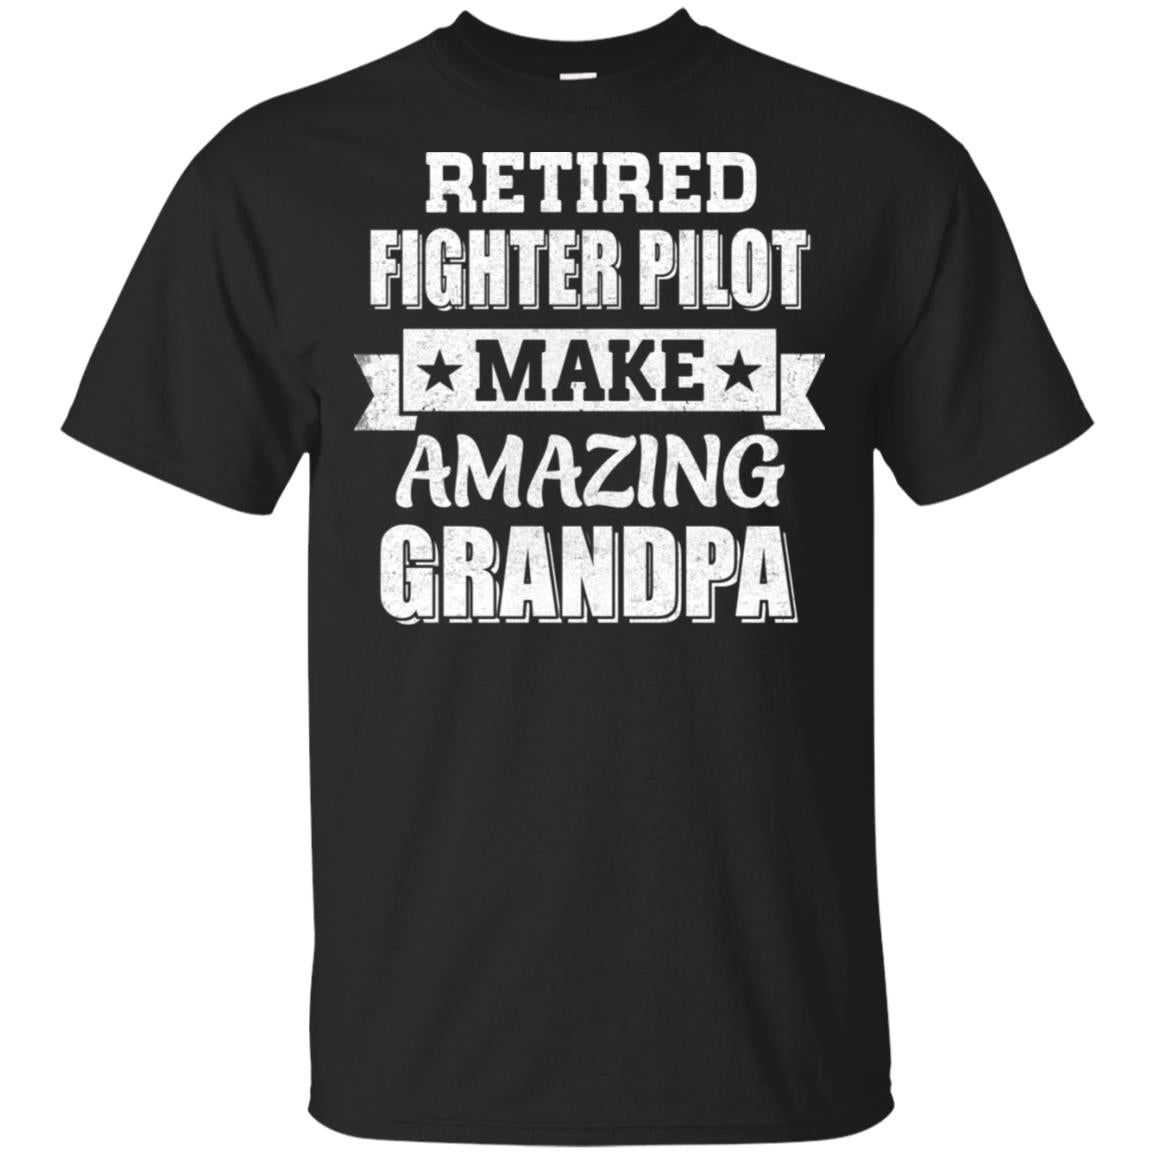 Funny Retired Fighter Pilot Make Amazing Grandpa Gifts